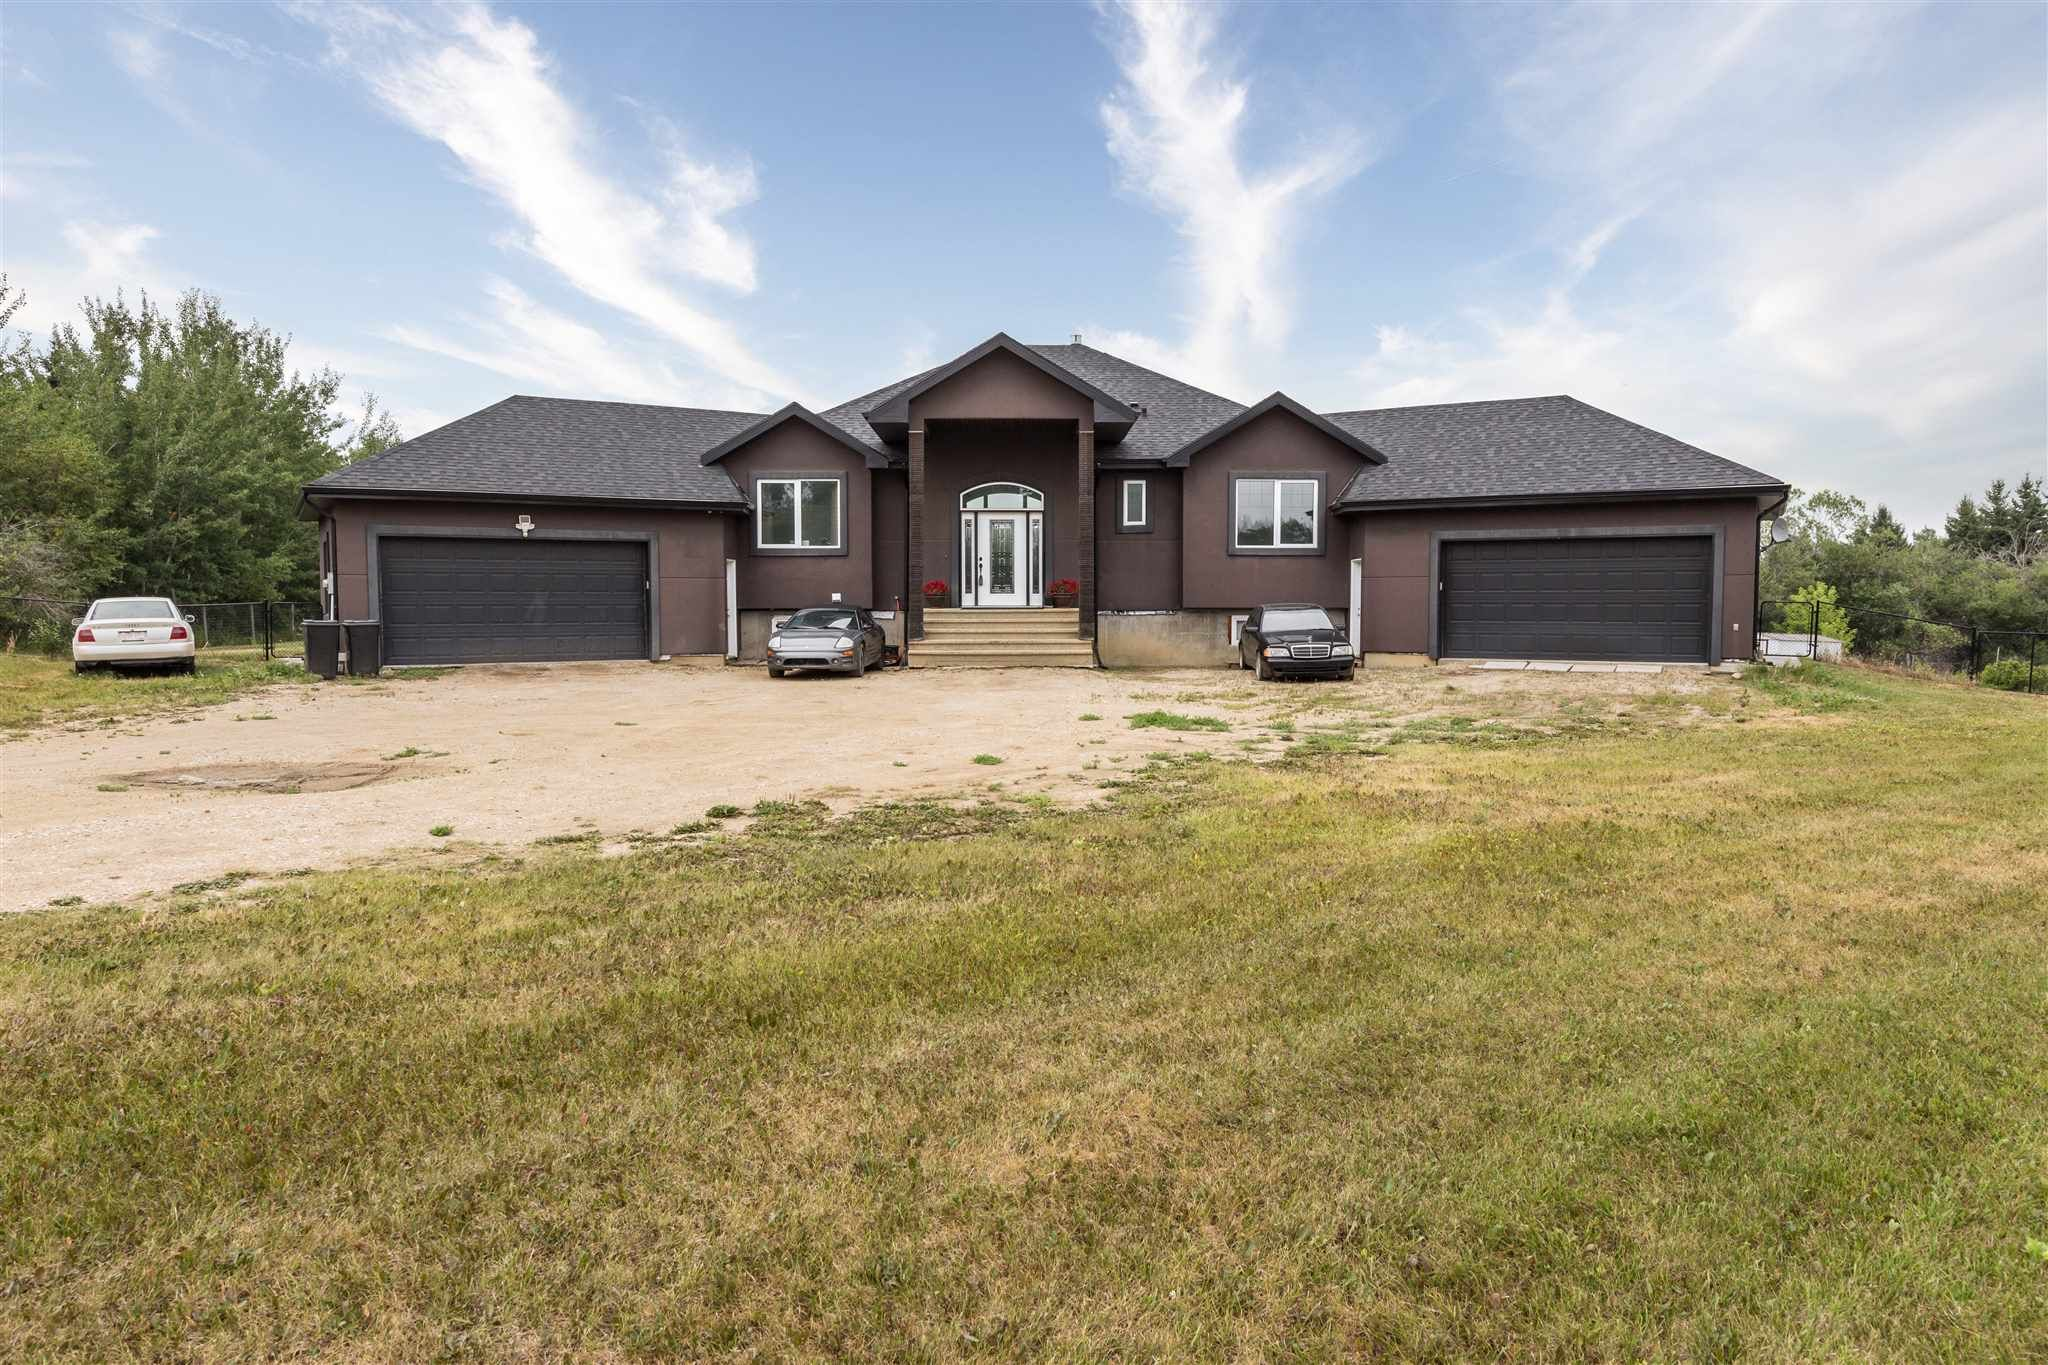 Main Photo: 24 54030 RGE RD 274: Rural Parkland County House for sale : MLS®# E4255483